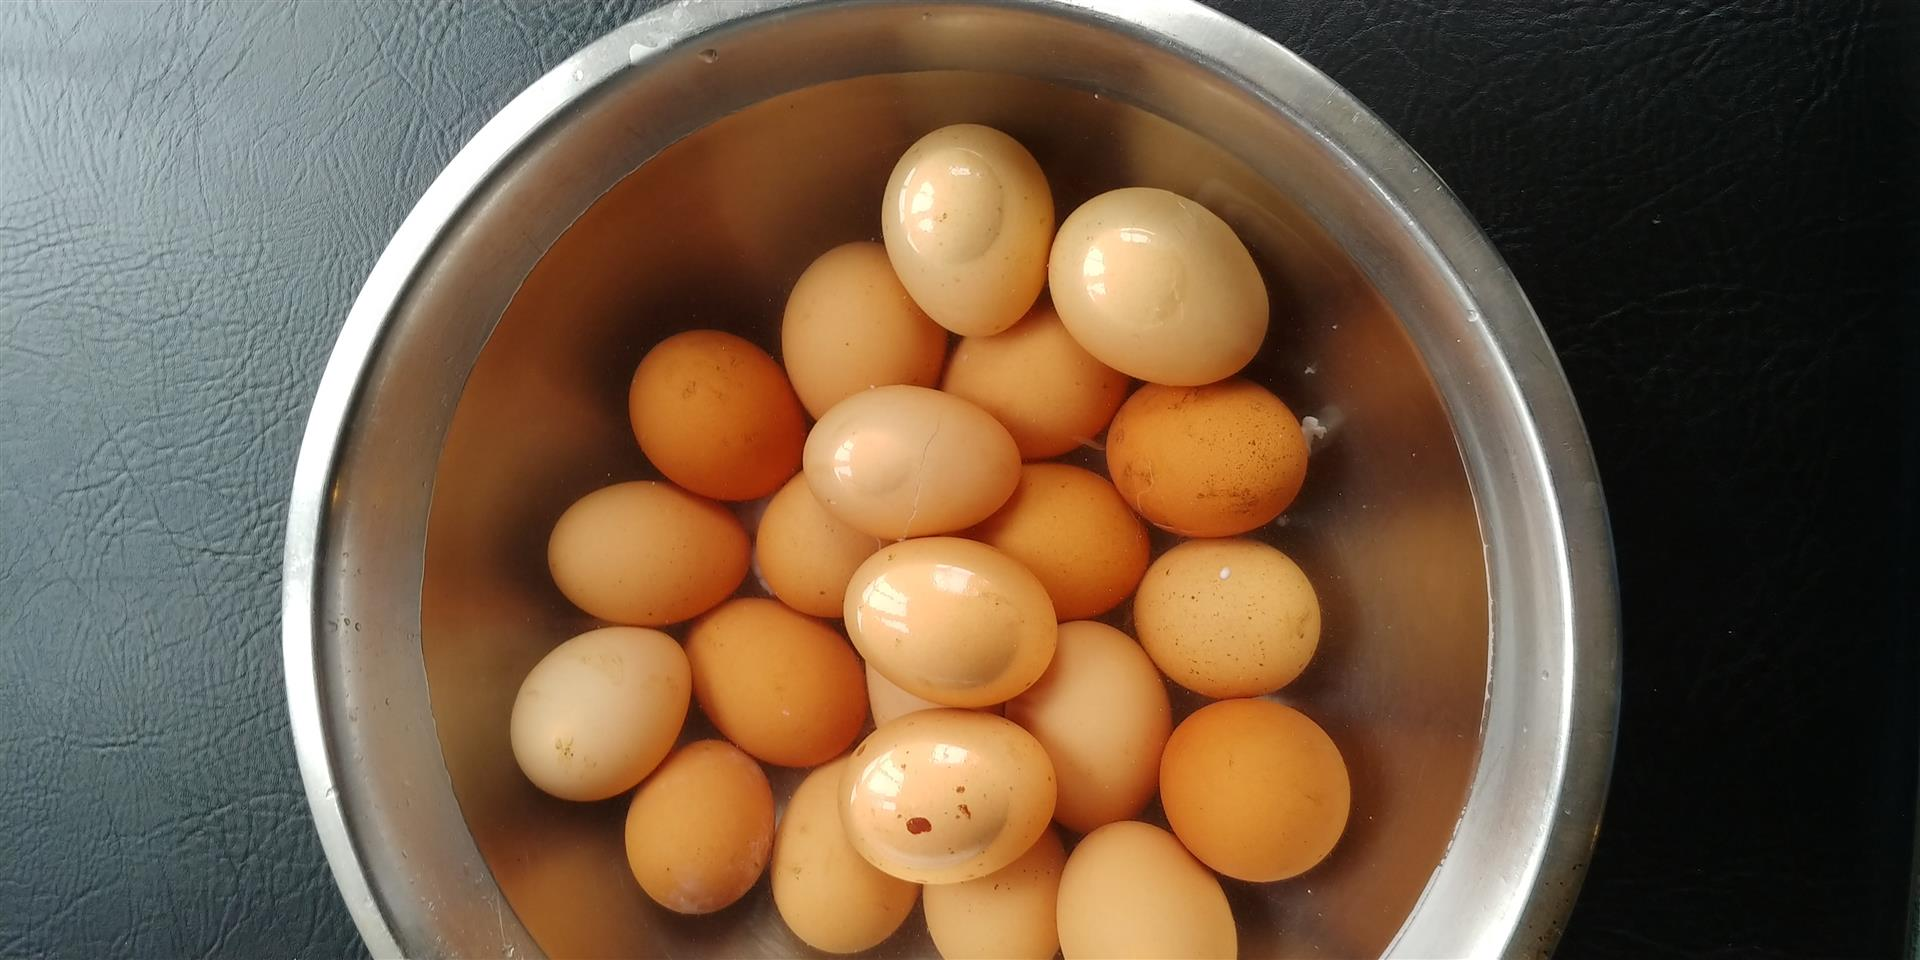 hard boiled eggs in a bowl